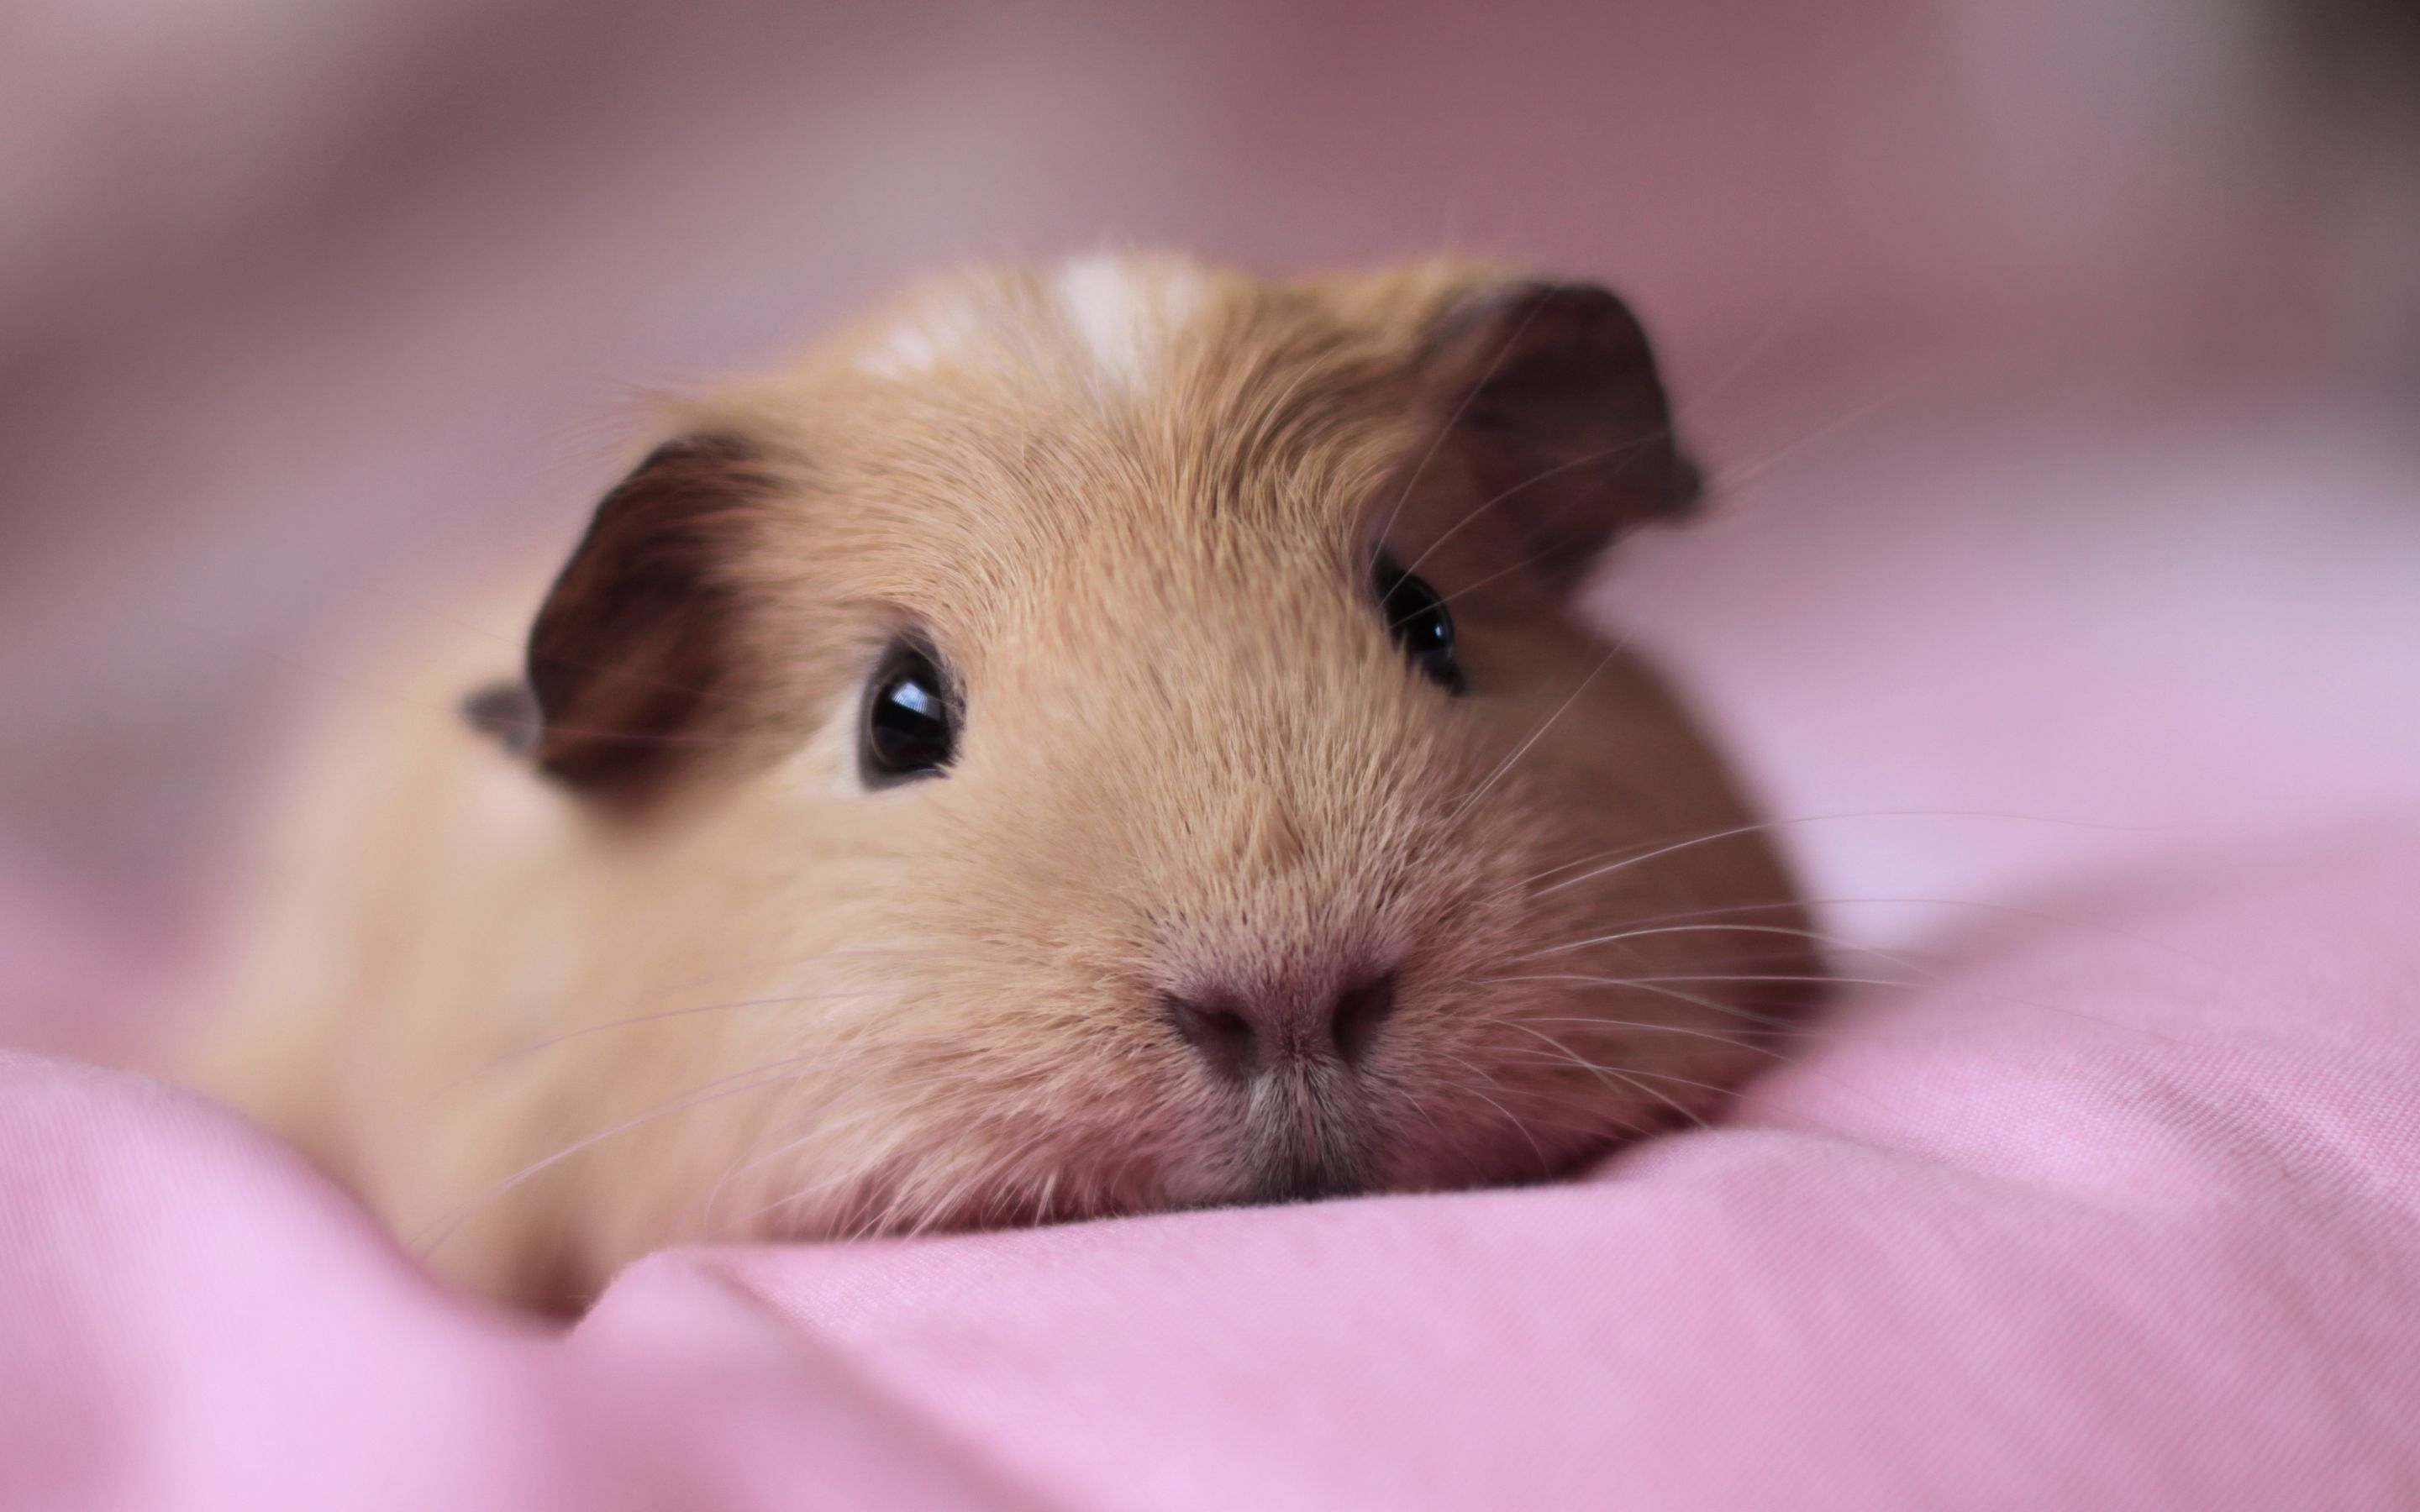 Guinea Pig Wallpapers - Android Apps on Google Play